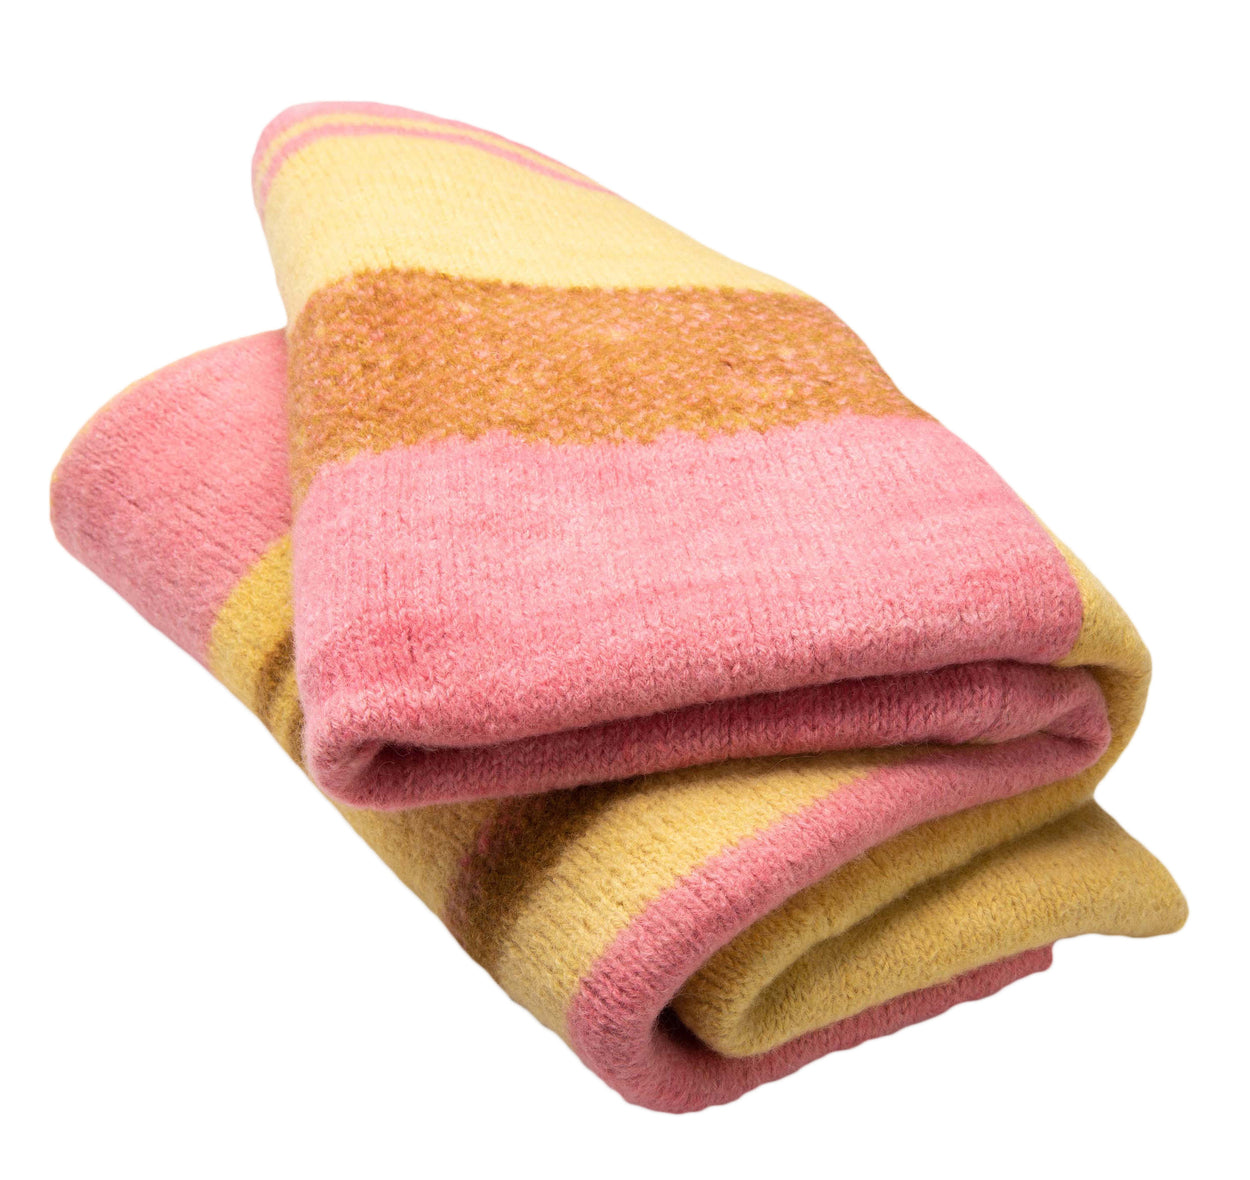 folded pink yellow and brown Alpaca blanket knitted by storyteller studio against white background